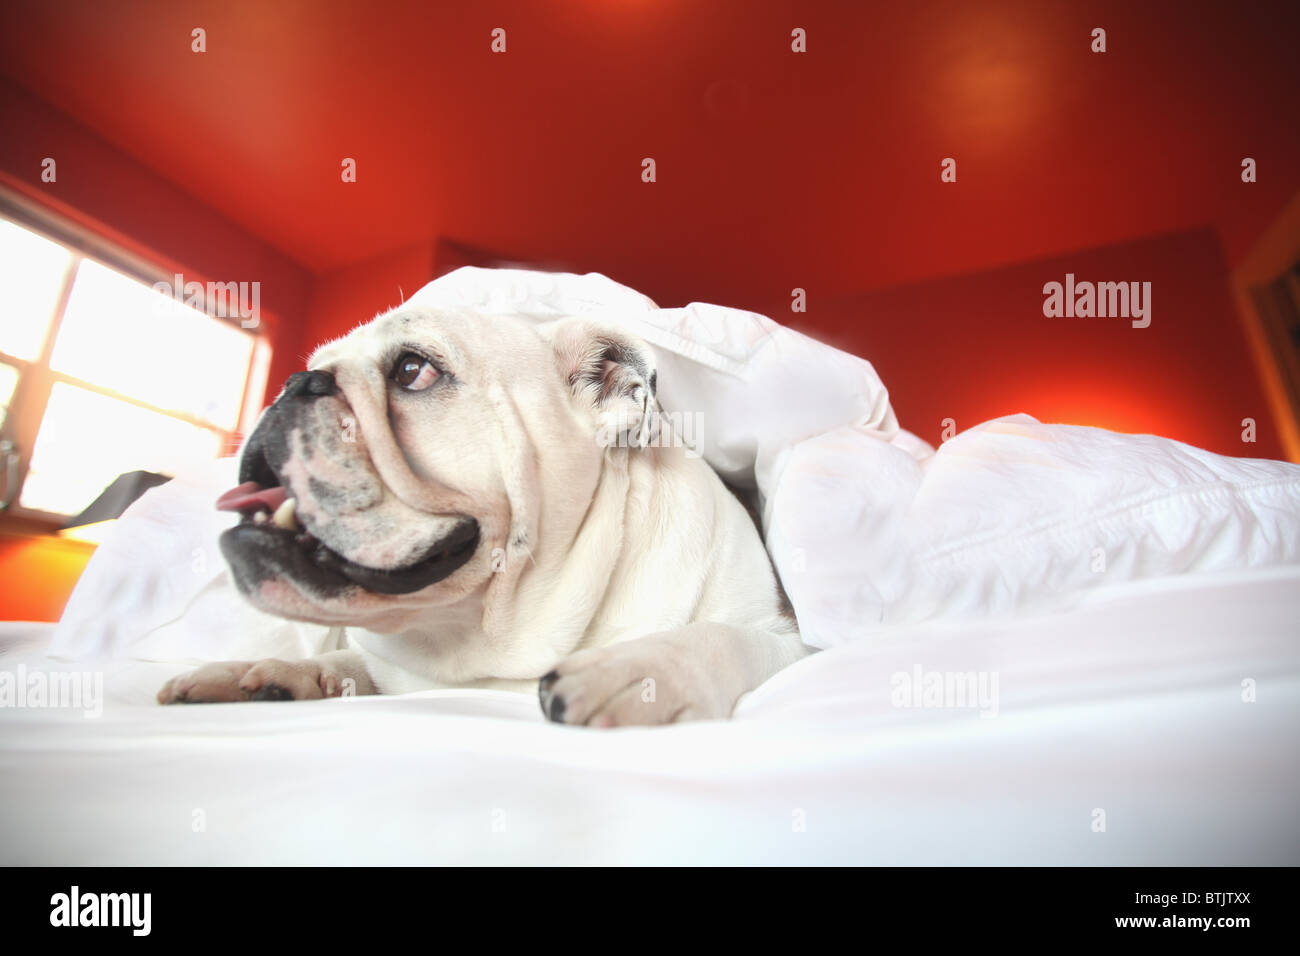 The Happy Bull Amsterdam Bull Dog Stock Photos Bull Dog Stock Images Alamy